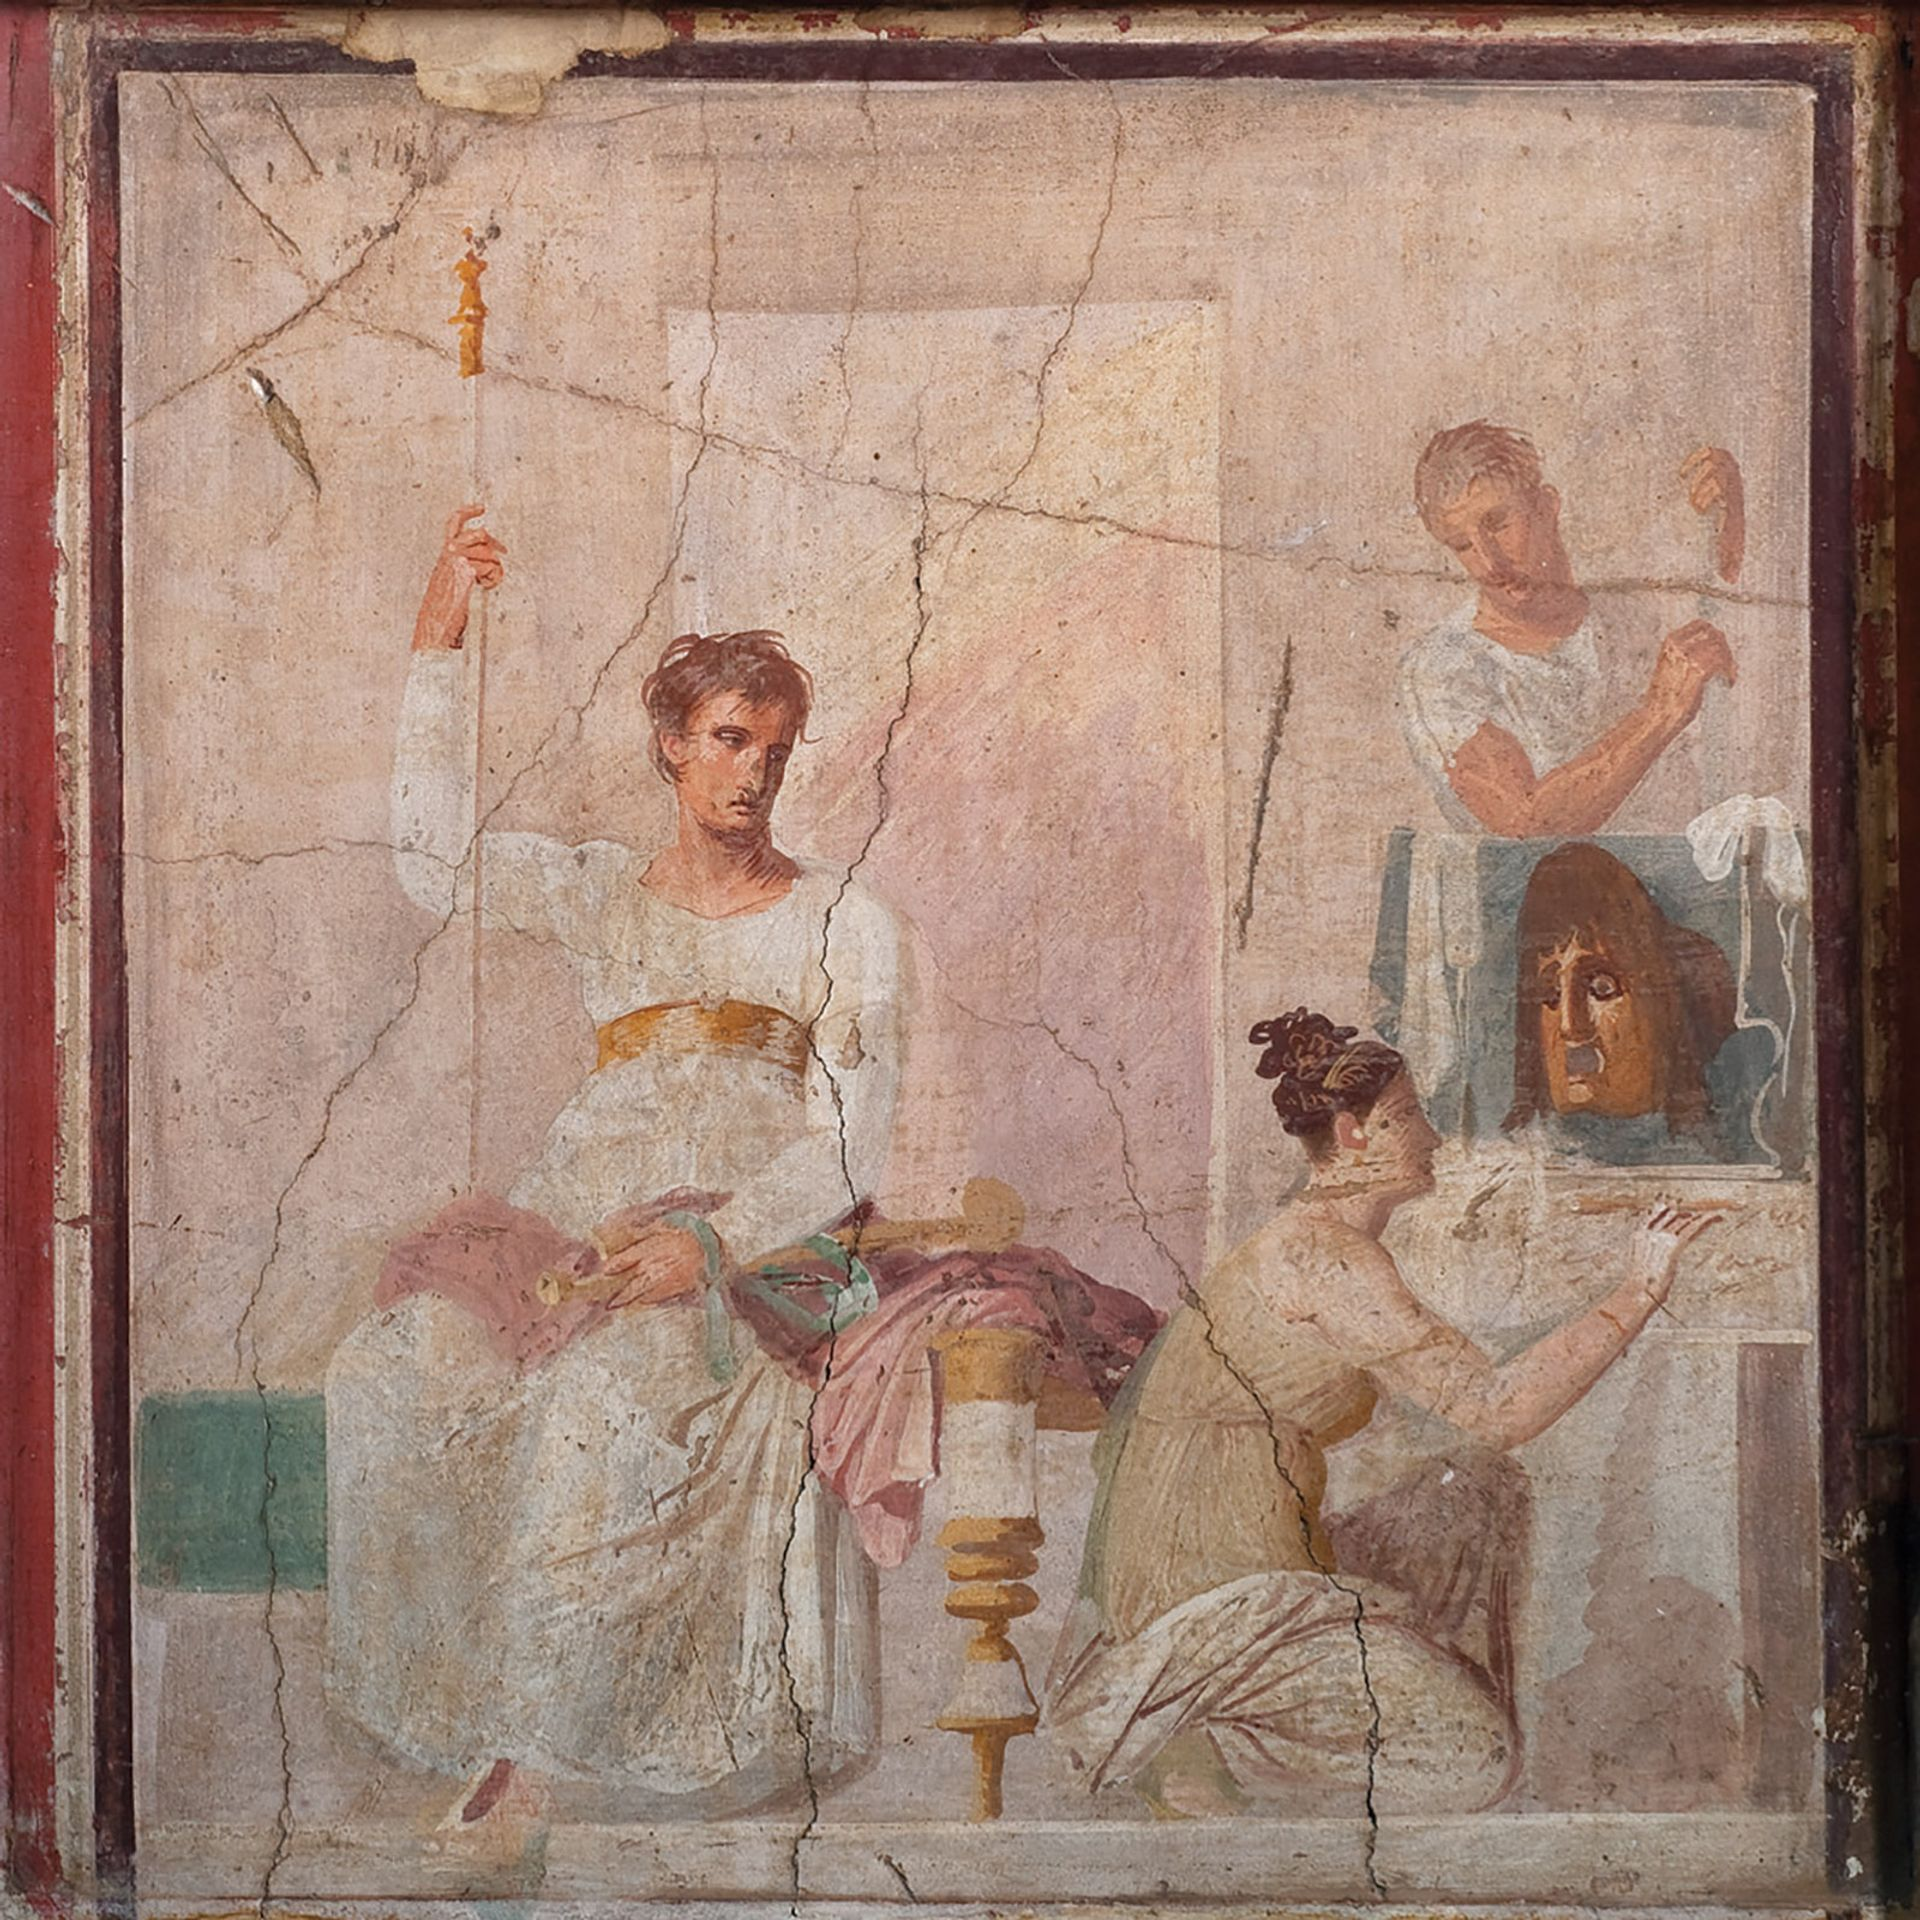 A fresco from Herculaneum (AD30-AD40) of an actor dressed as king, and female figure with a small painting of a mask Museo Archeologico Nazionale di Napoli